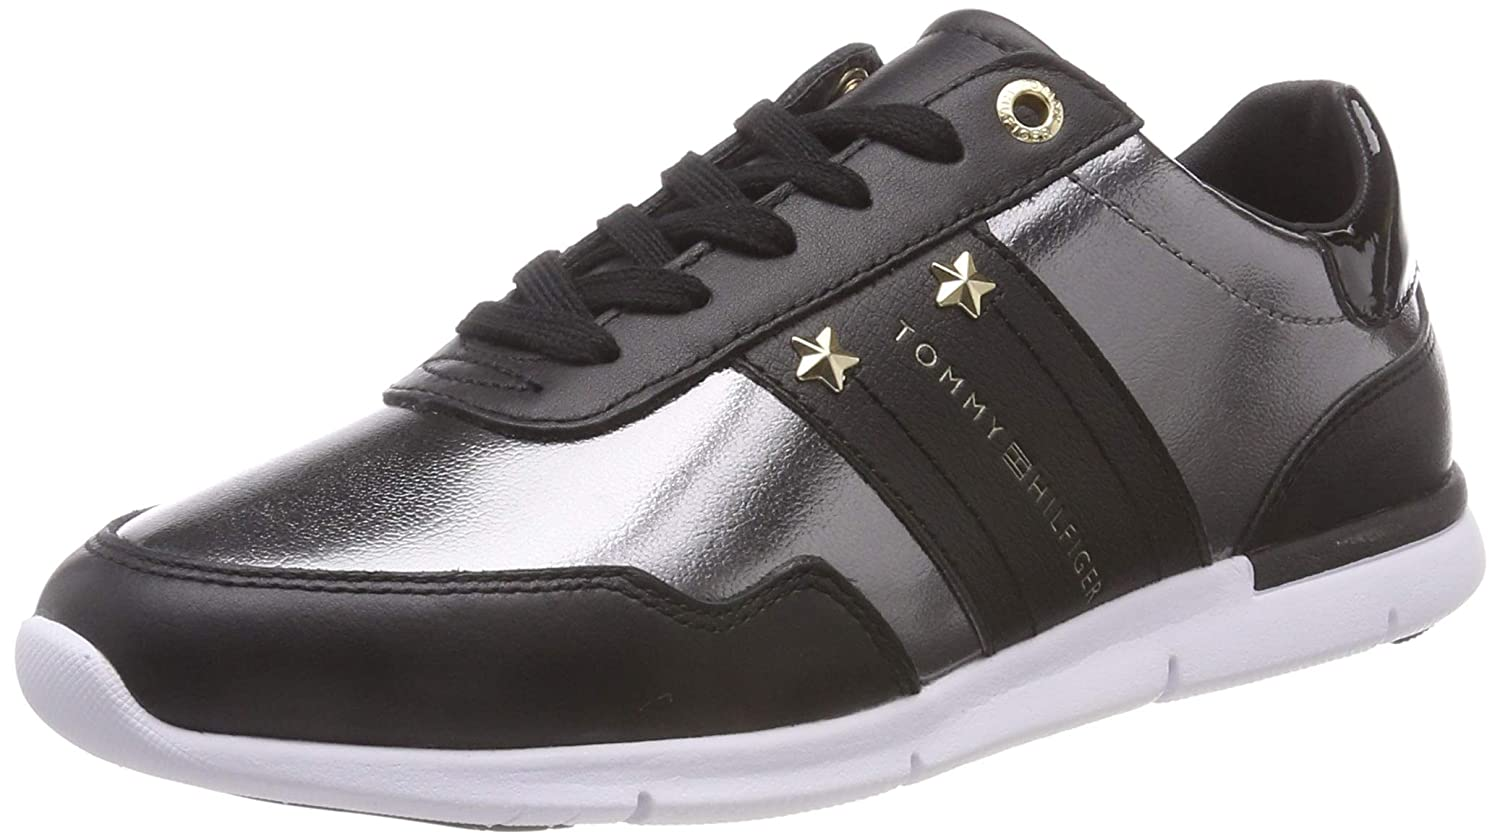 TALLA 38 EU. Tommy Hilfiger Tommy Essential Leather Sneaker, Zapatillas para Mujer